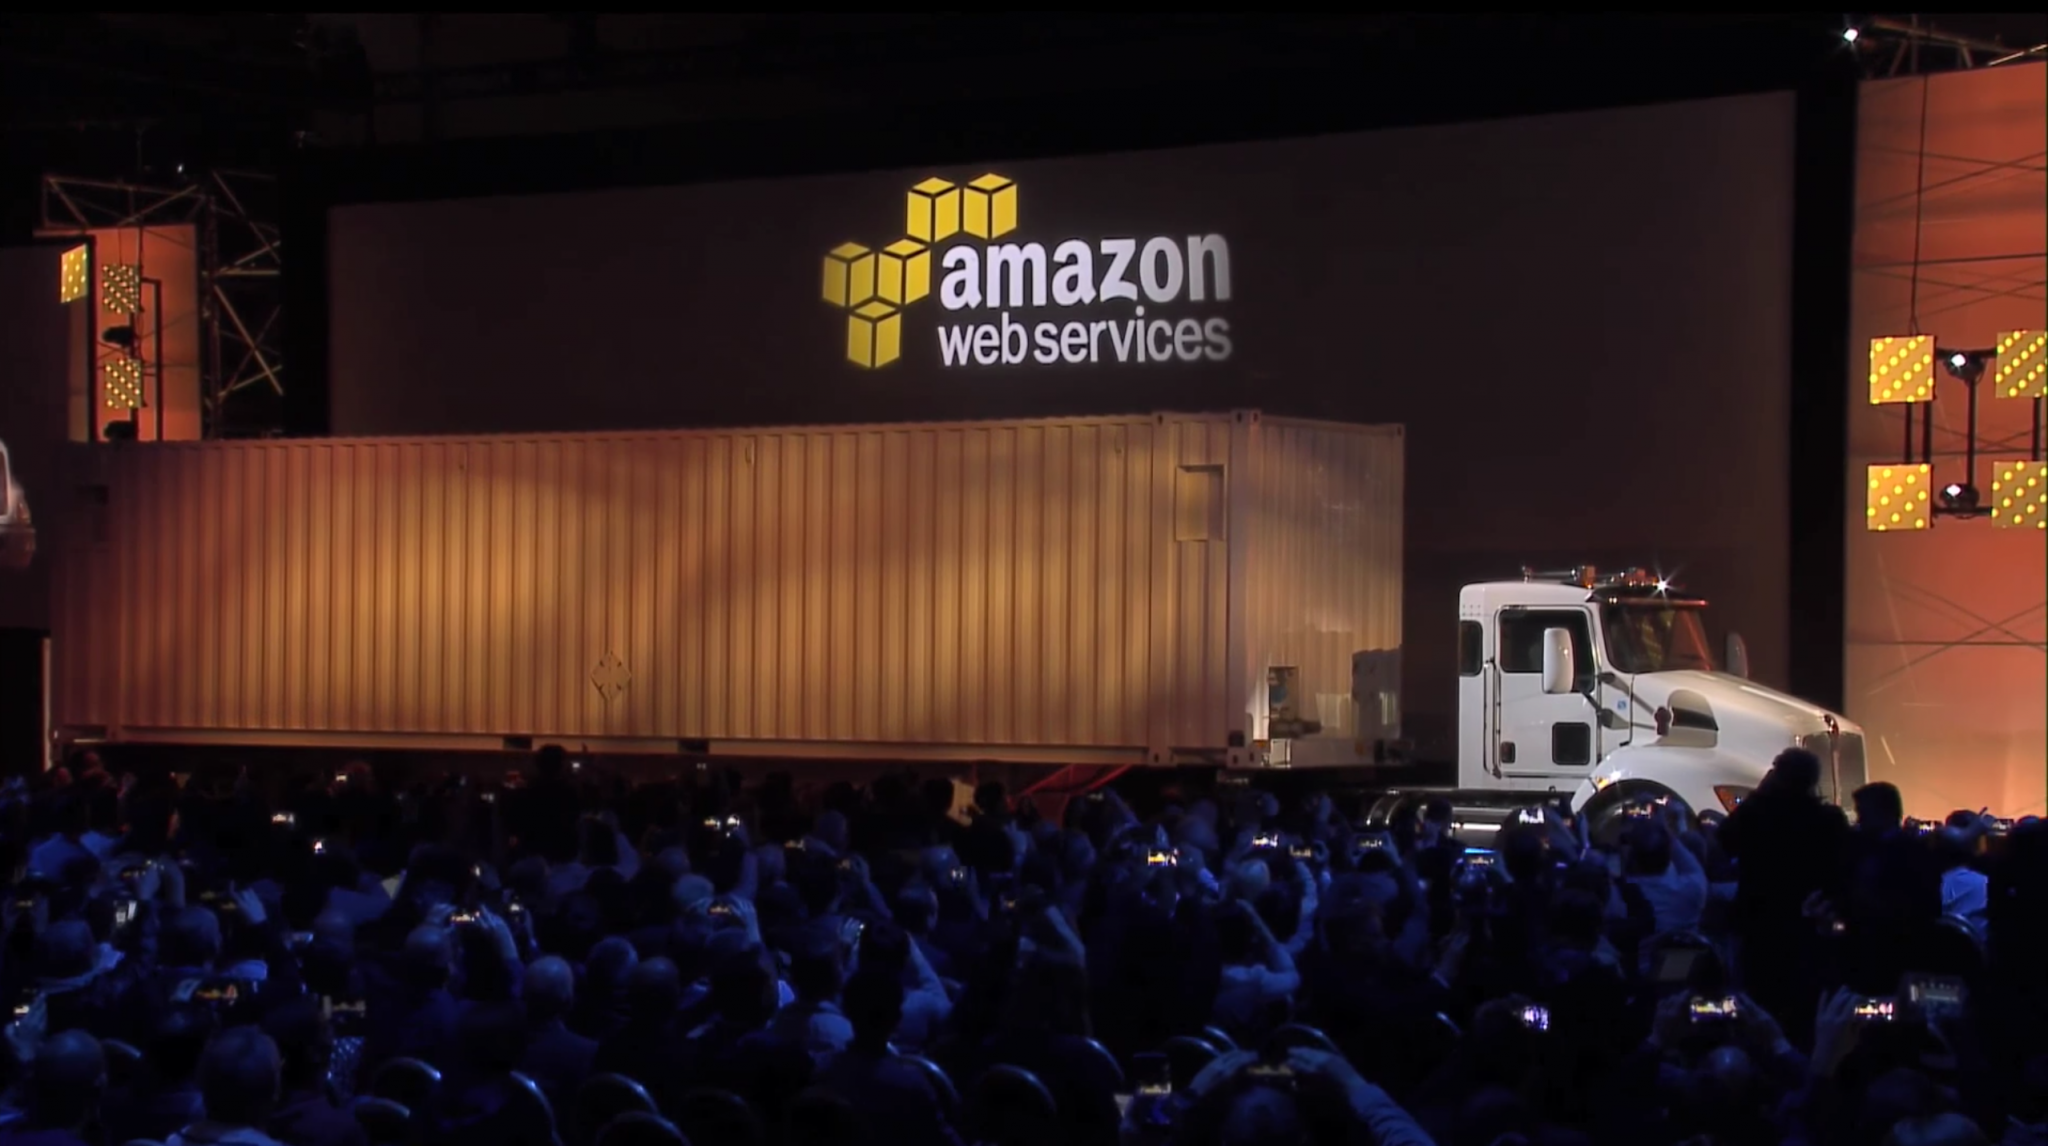 AWS's crazy, genius plan to haul your data to the cloud